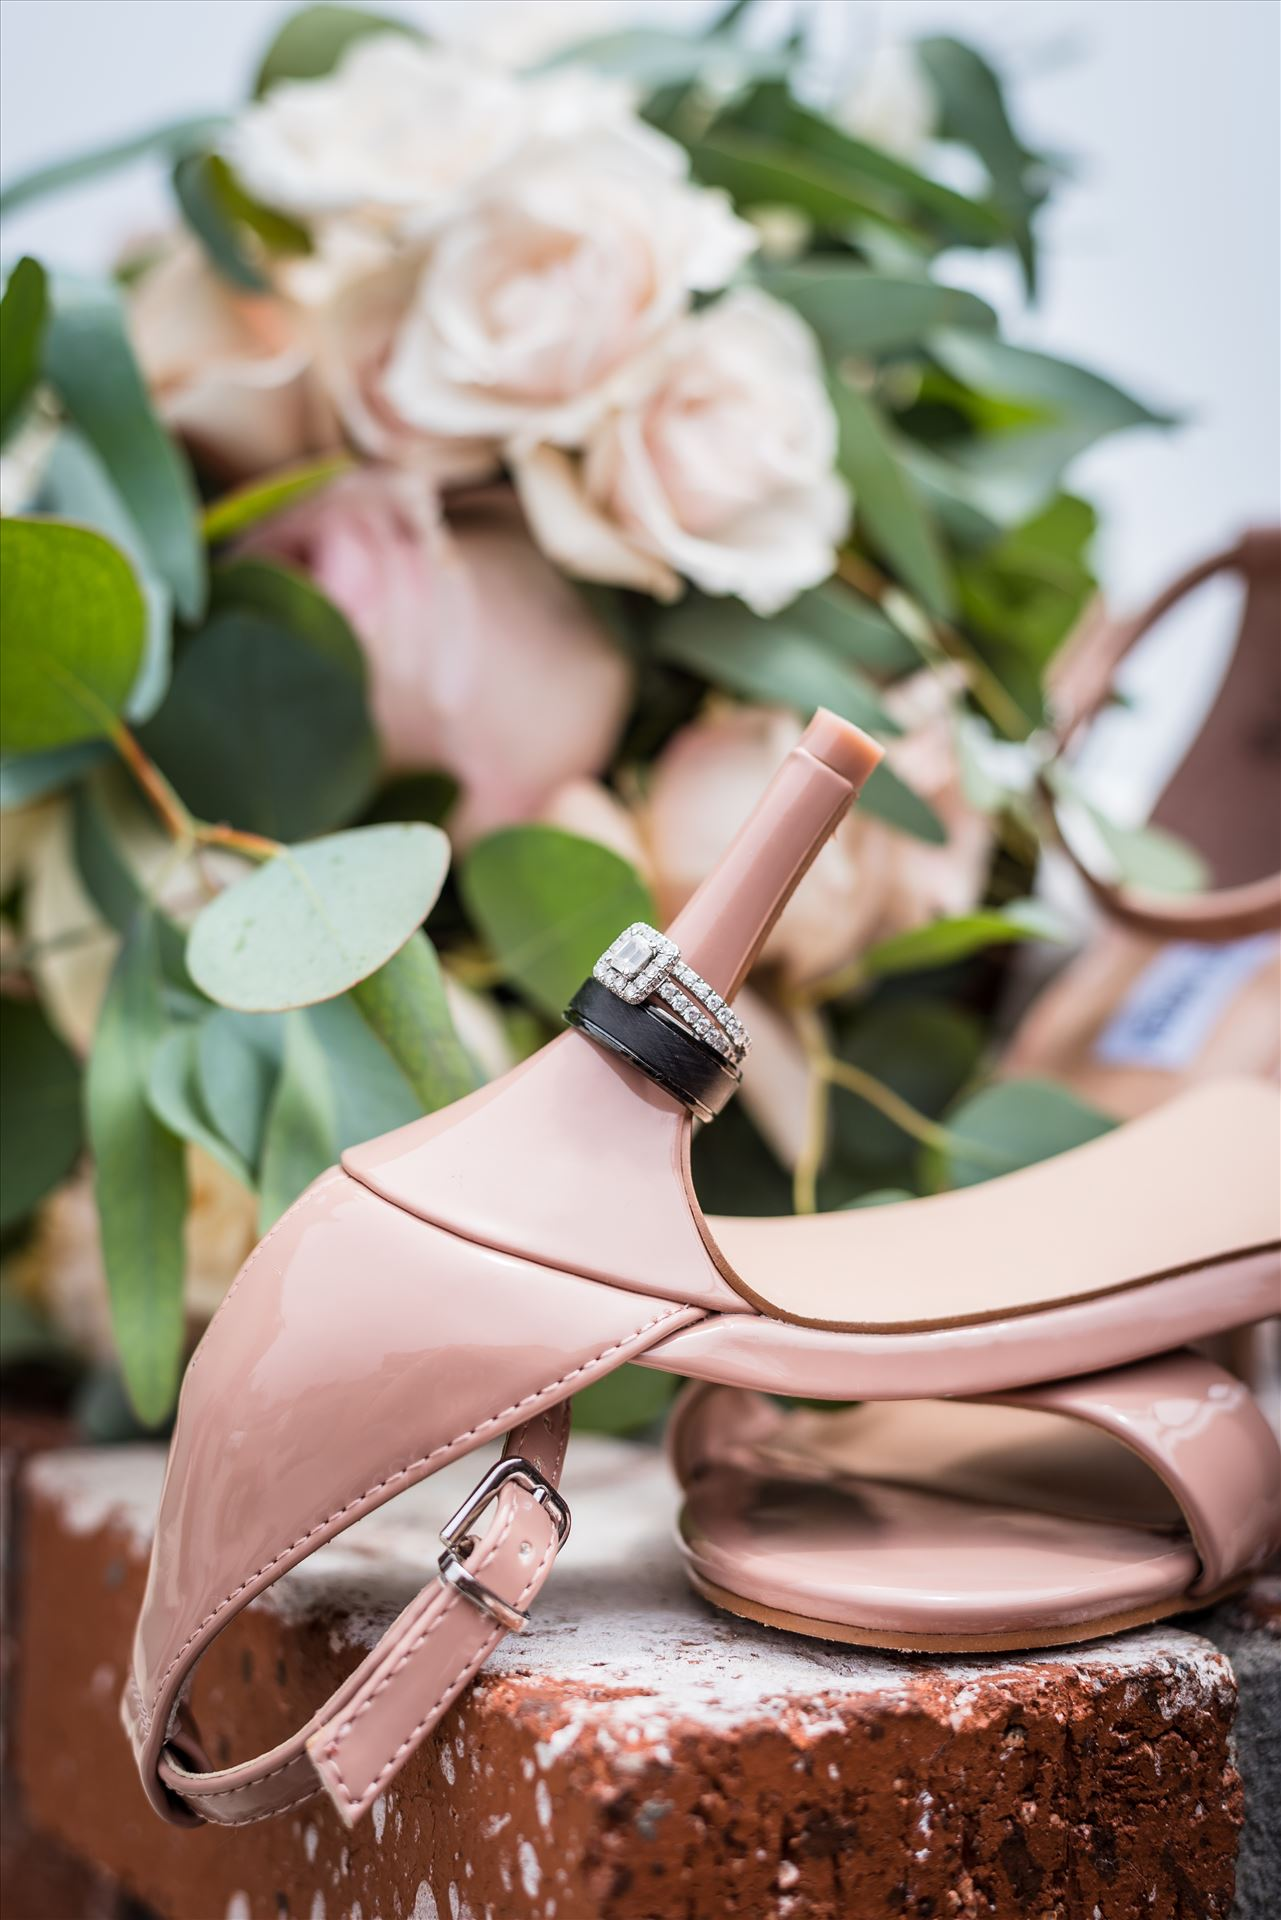 FW-5919.JPG Cayucos California Beach and Bluffs Wedding near Morro Bay and Cambria with romantic chic flair by Mirror's Edge Photography, San Luis Obispo County Wedding Photographer.  Wedding rings, flowers and brides shoes by Sarah Williams